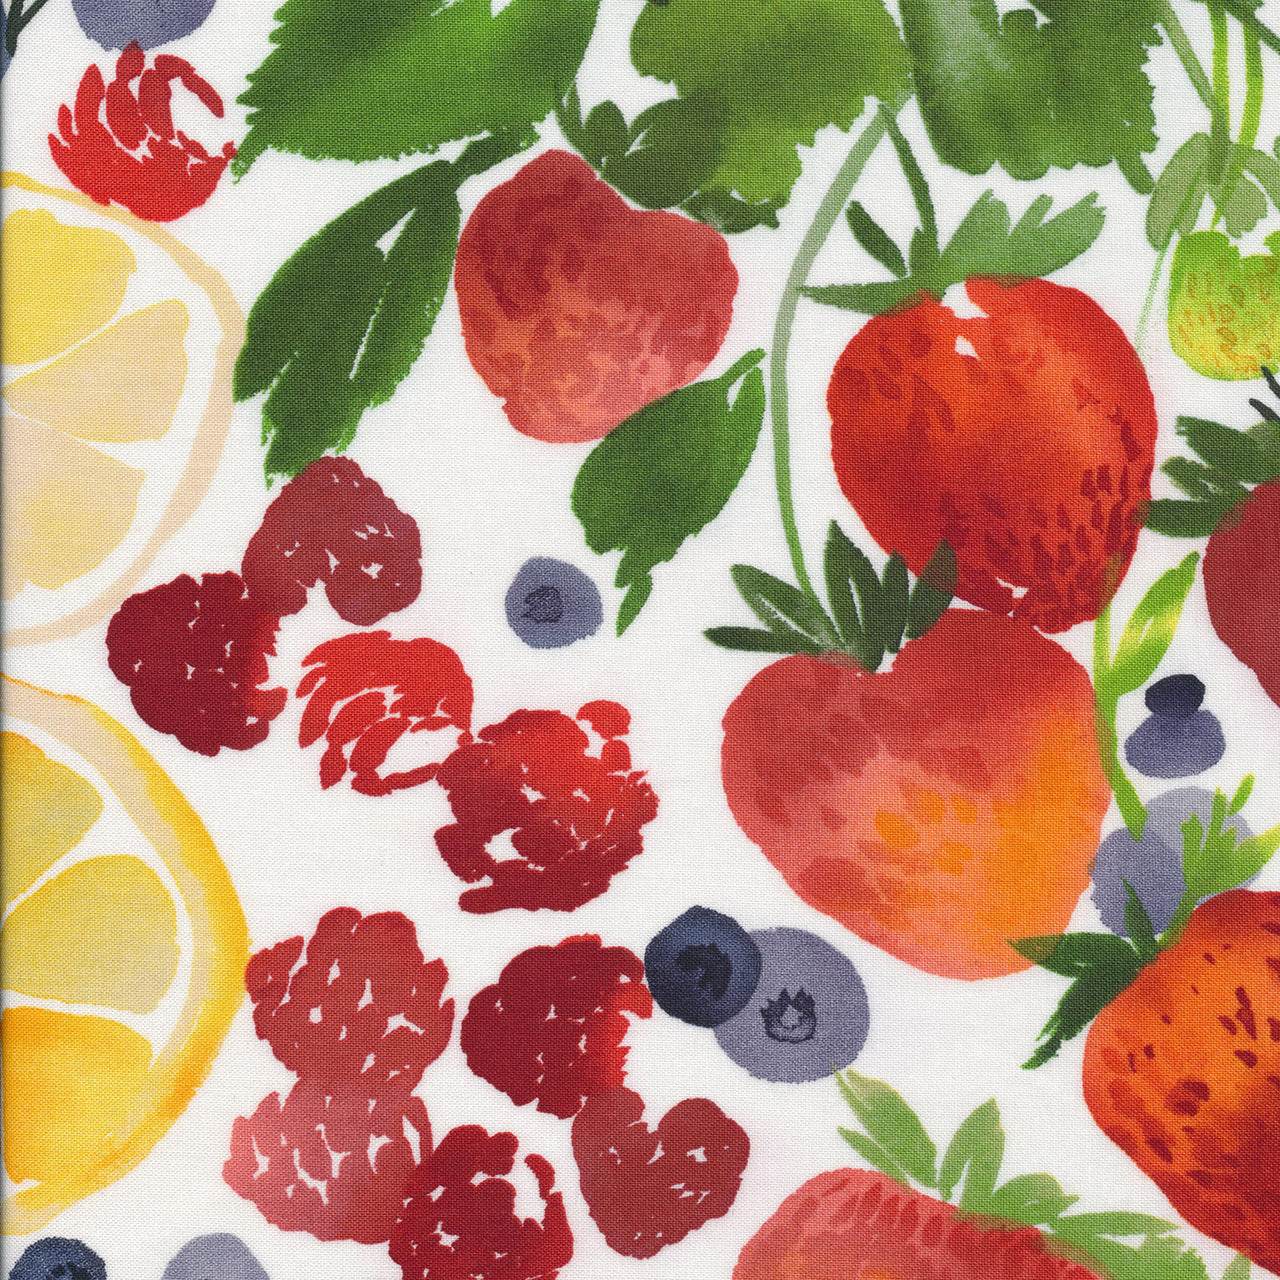 Berry Jam by Yao Cheng : Cloud 9 : Laminated Cotton